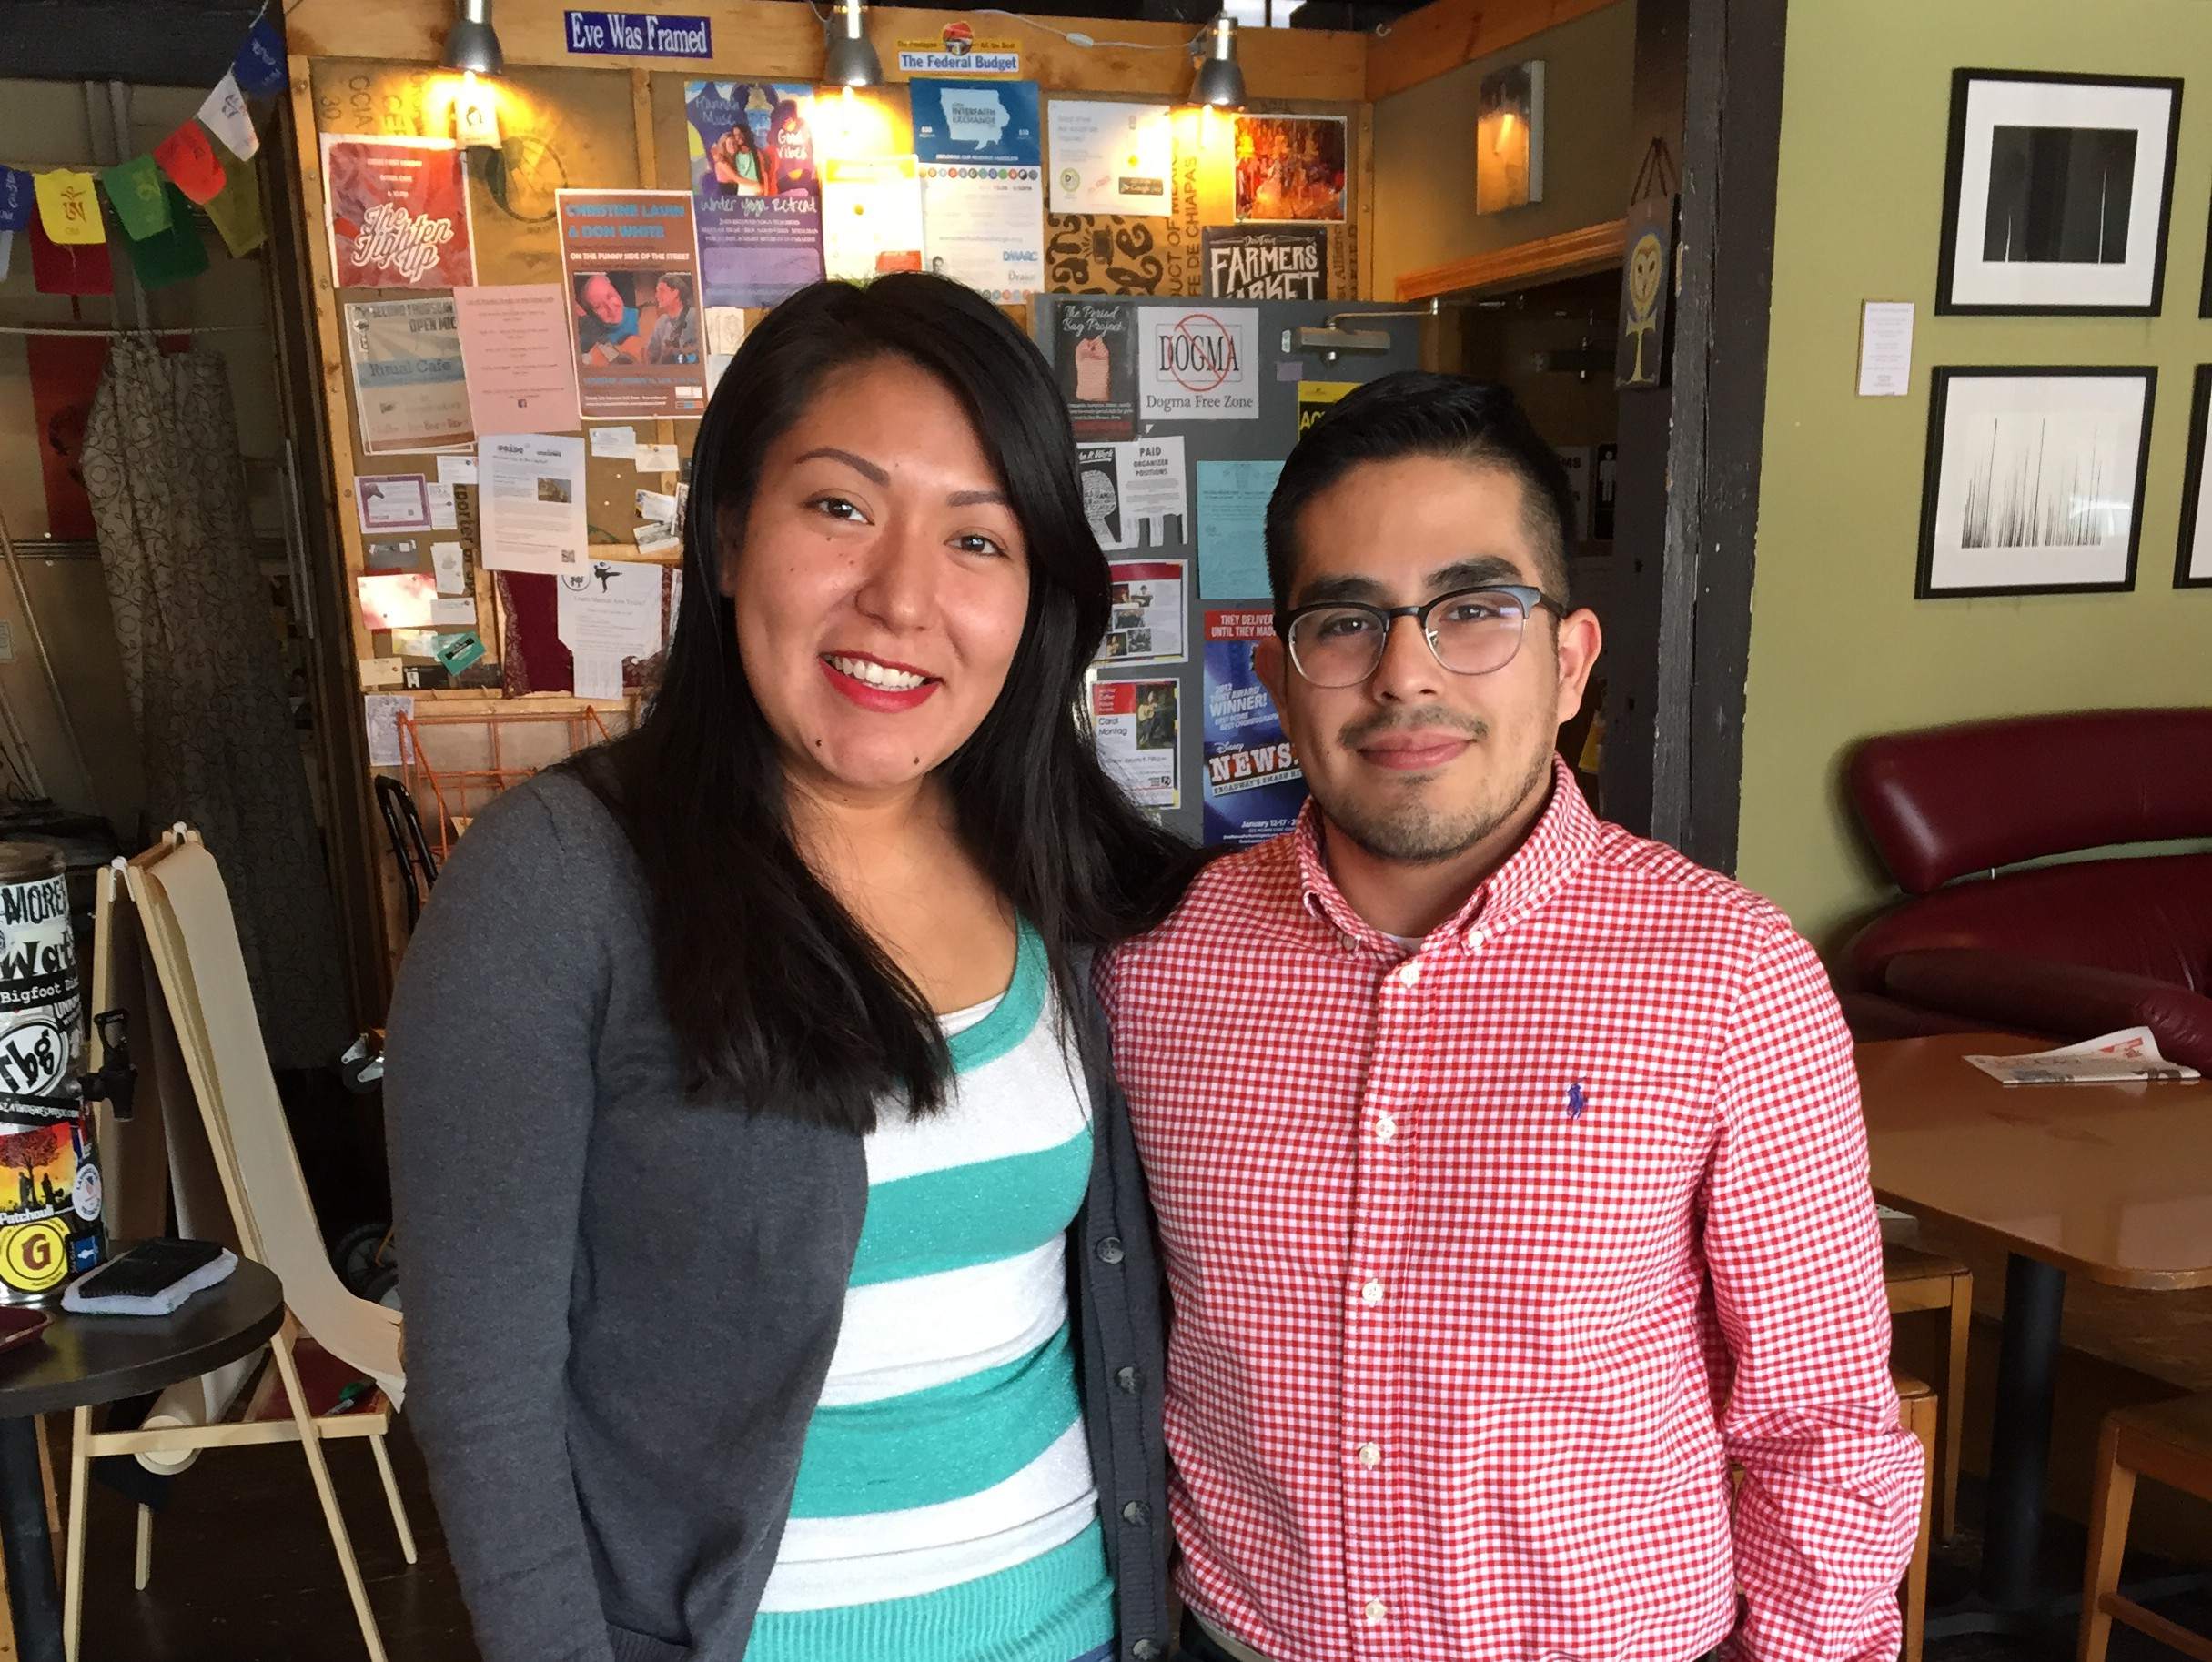 Monica Reyes, 25, and Hector Salamanca Arroyo, 22, at the Ritual Cafe in Des Moines.